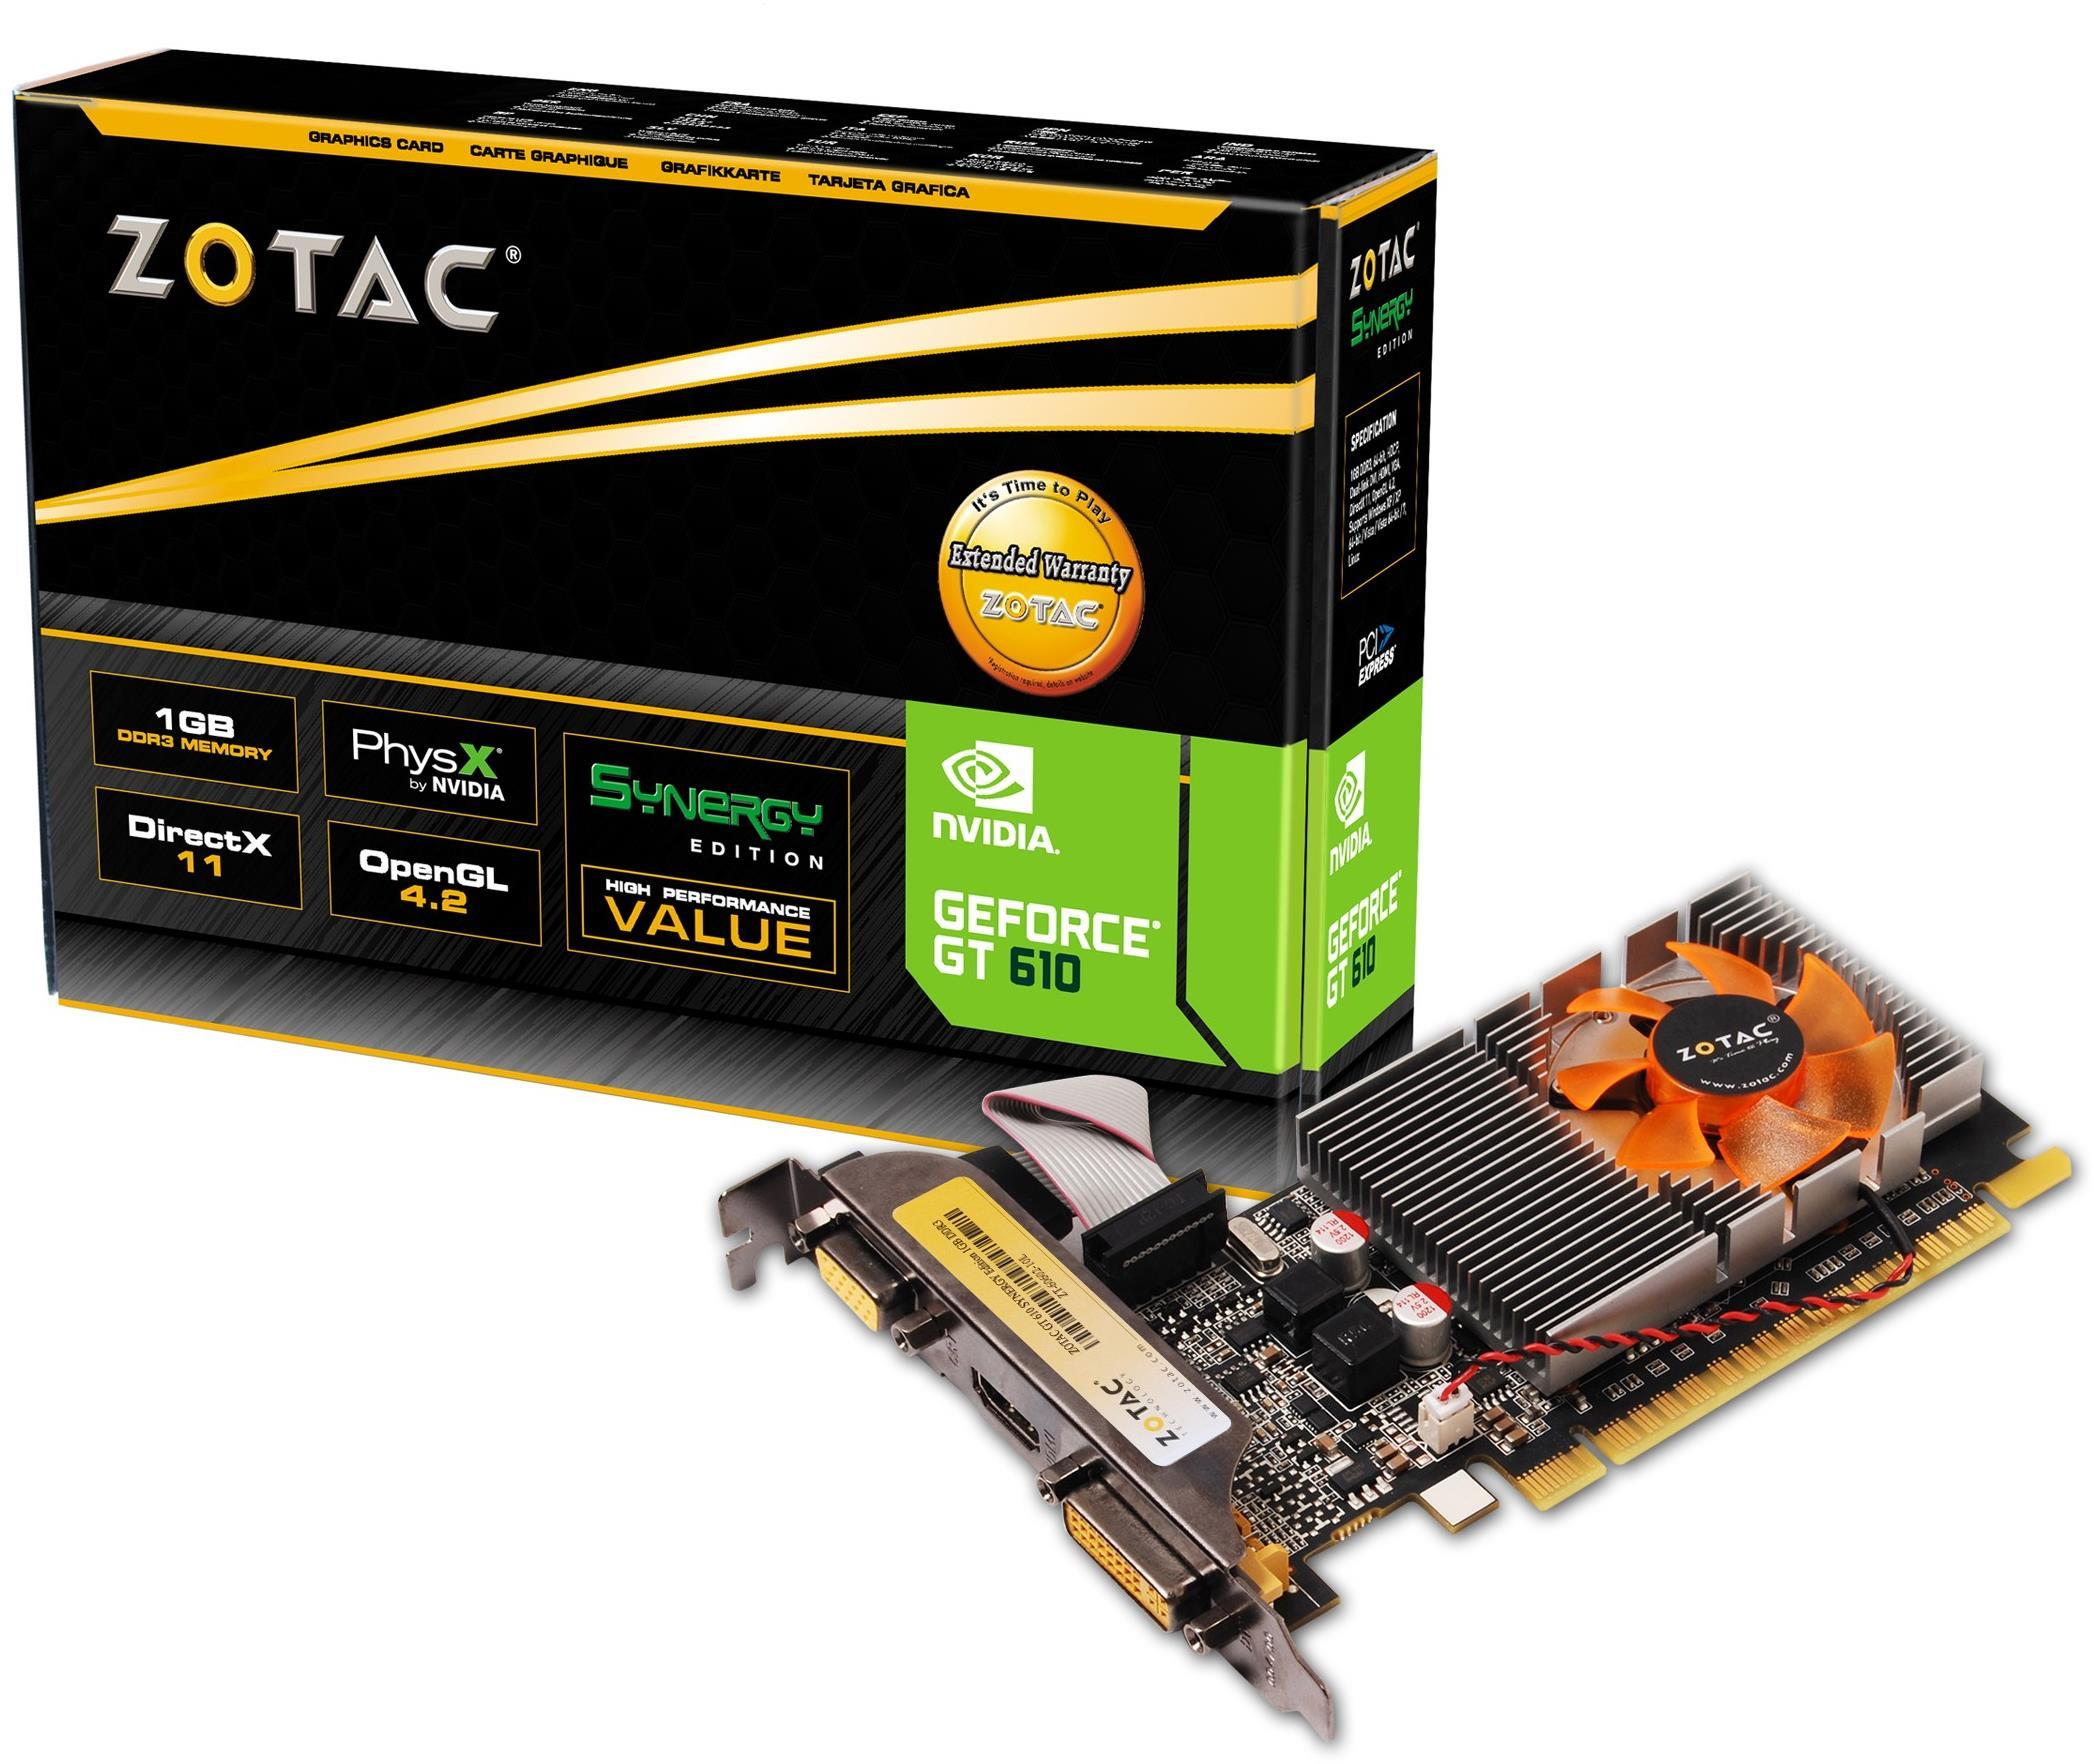 Zotac GeForce GT 610 Synergy Edition PCI-Express Graphics Card